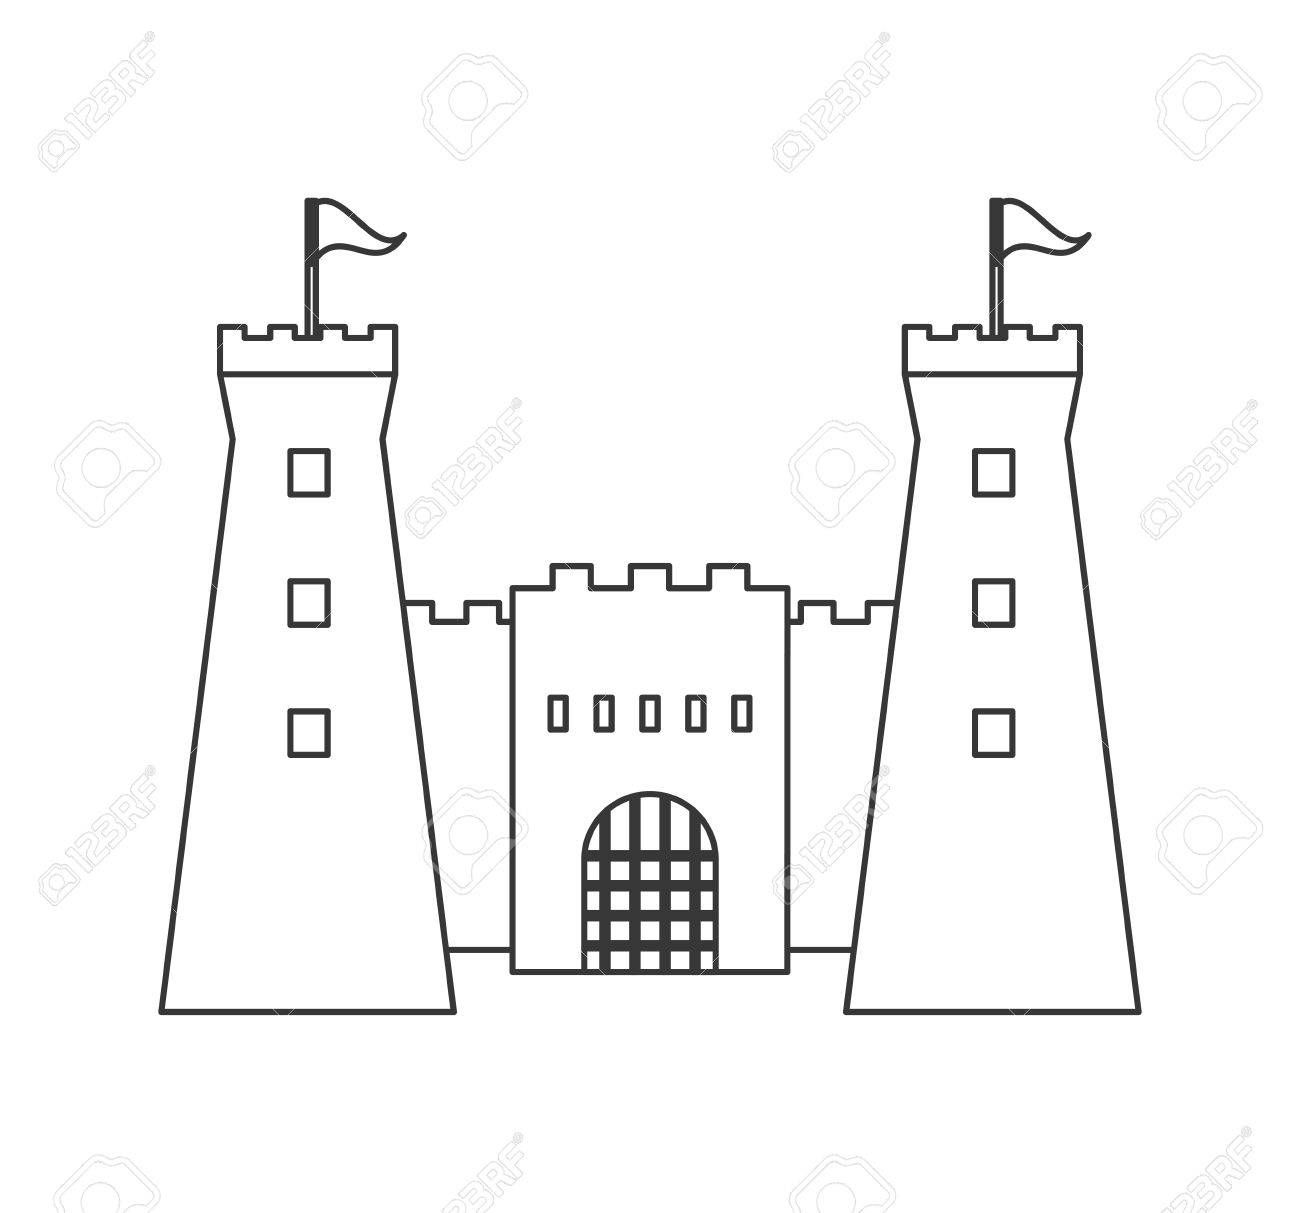 flat design simple large castle icon vector illustration royalty